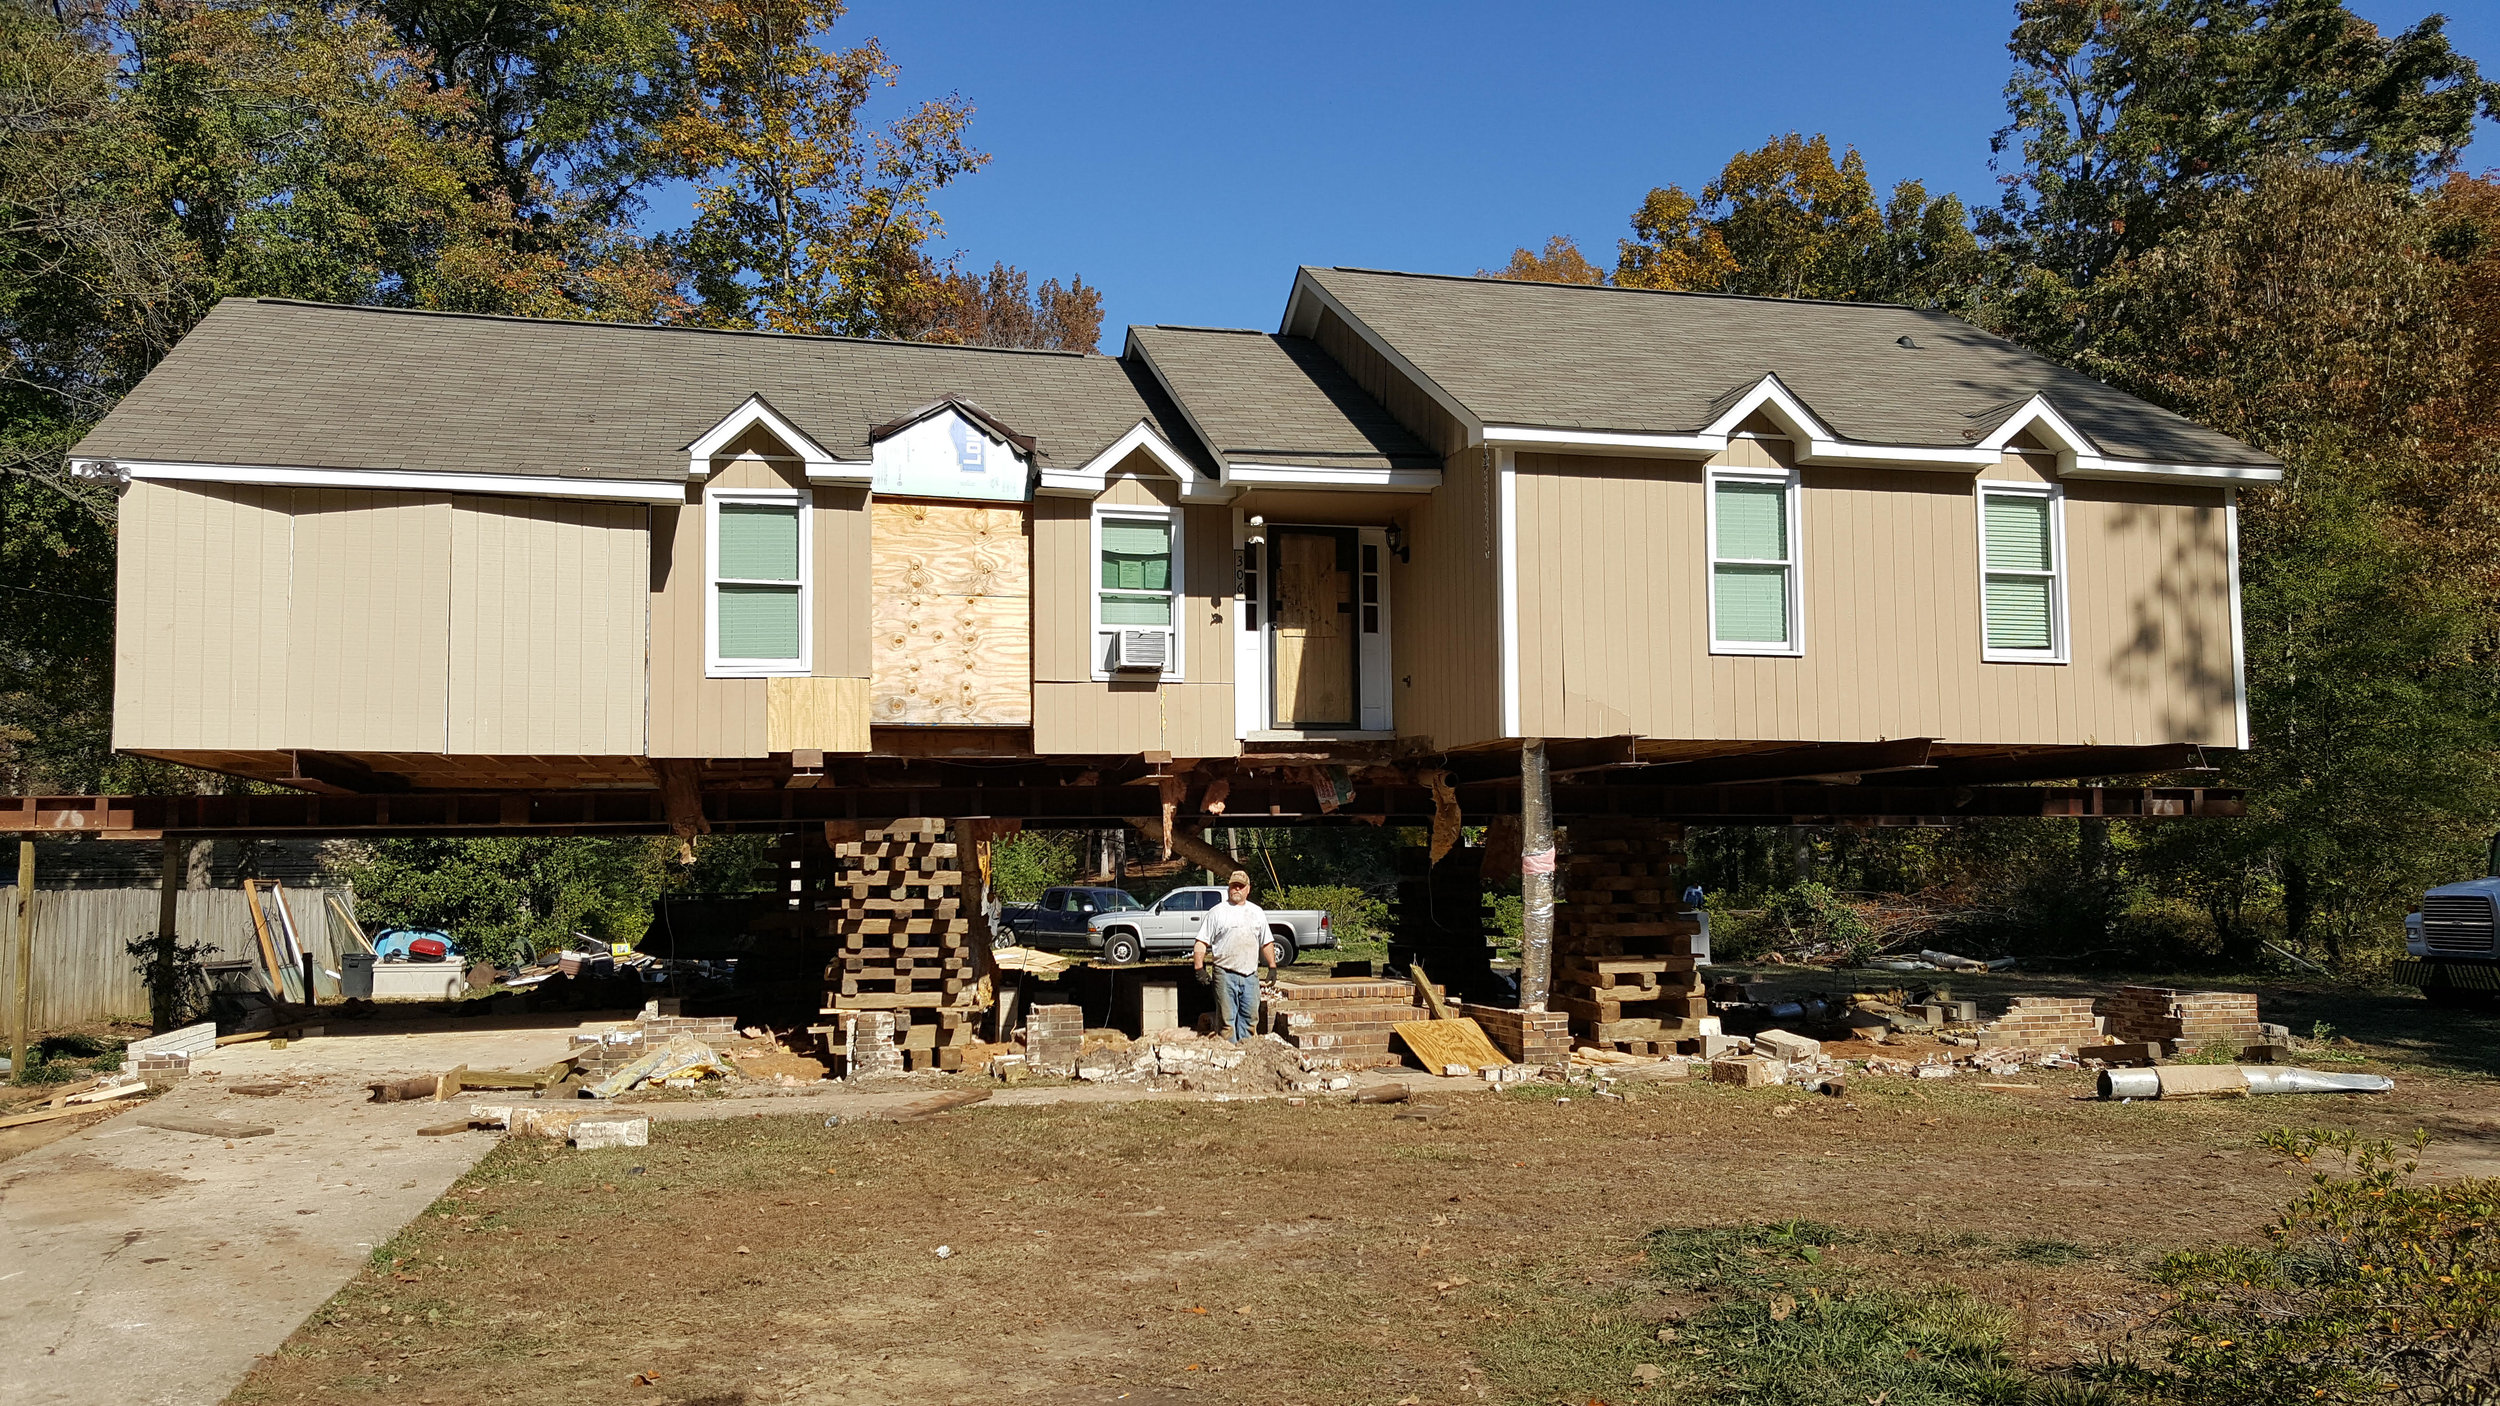 This home has now been raised to meet new flood regulations and is ready for its new foundation.